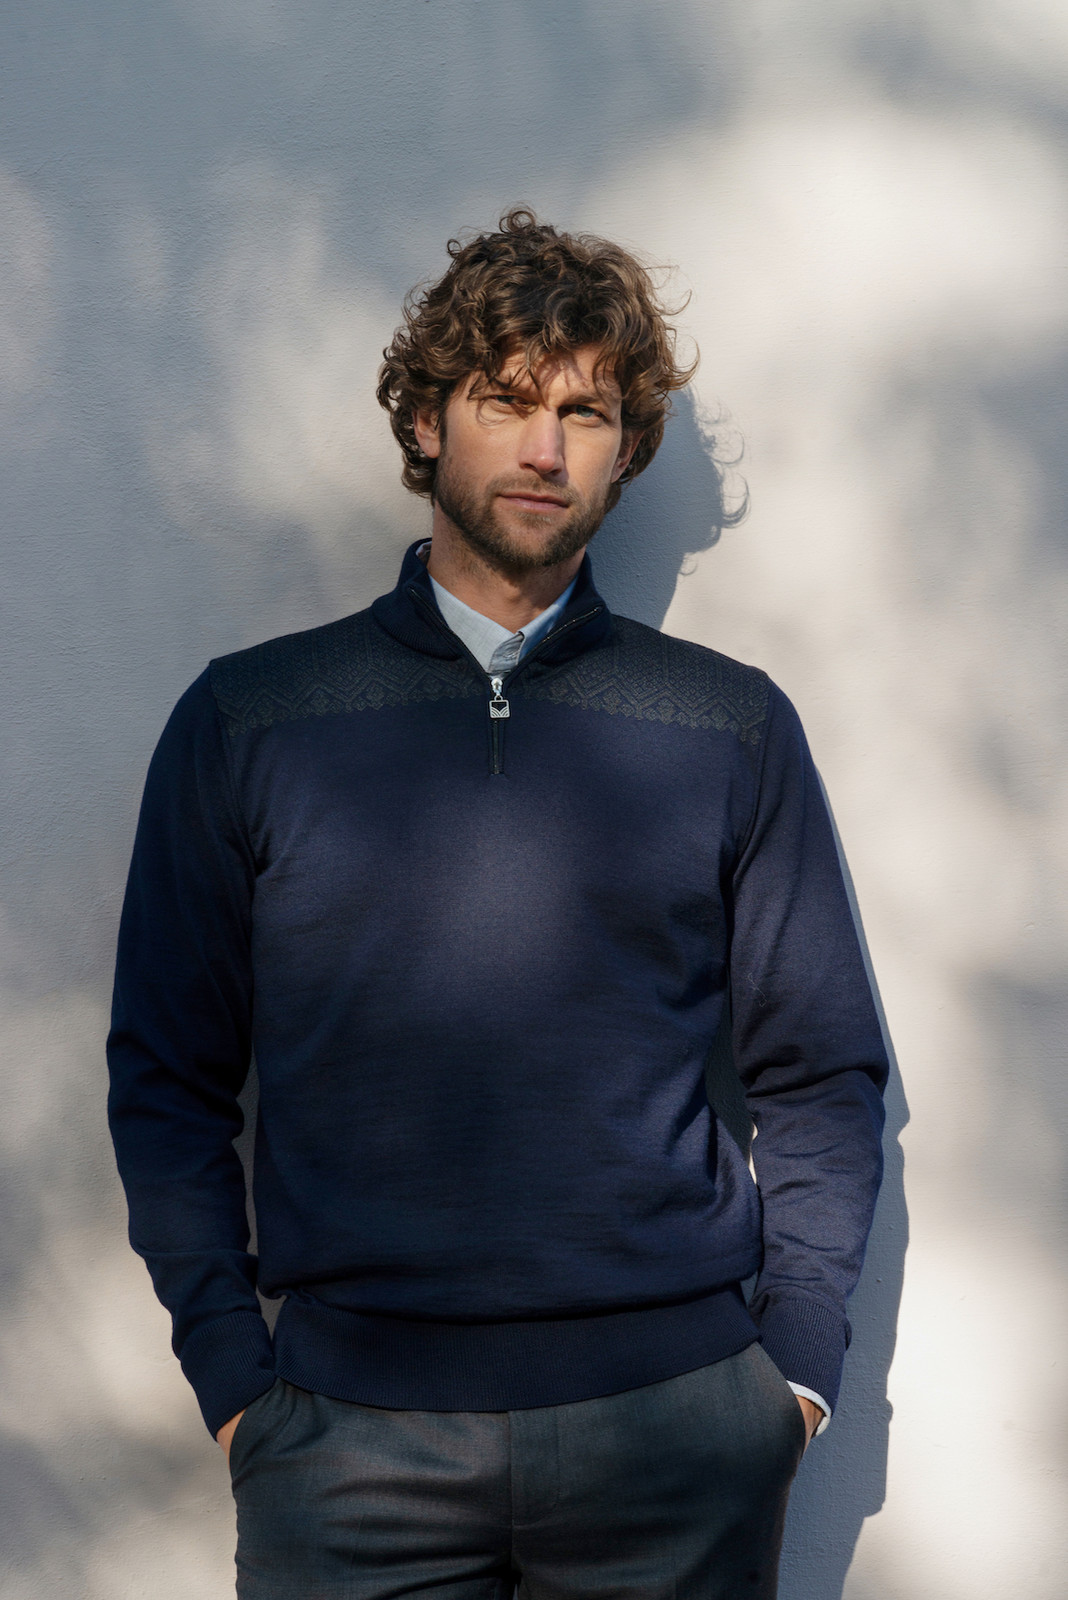 Dale of Norway Eirik Pullover - Navy/Dark Charcoal, 93851-H (93851-H) on model